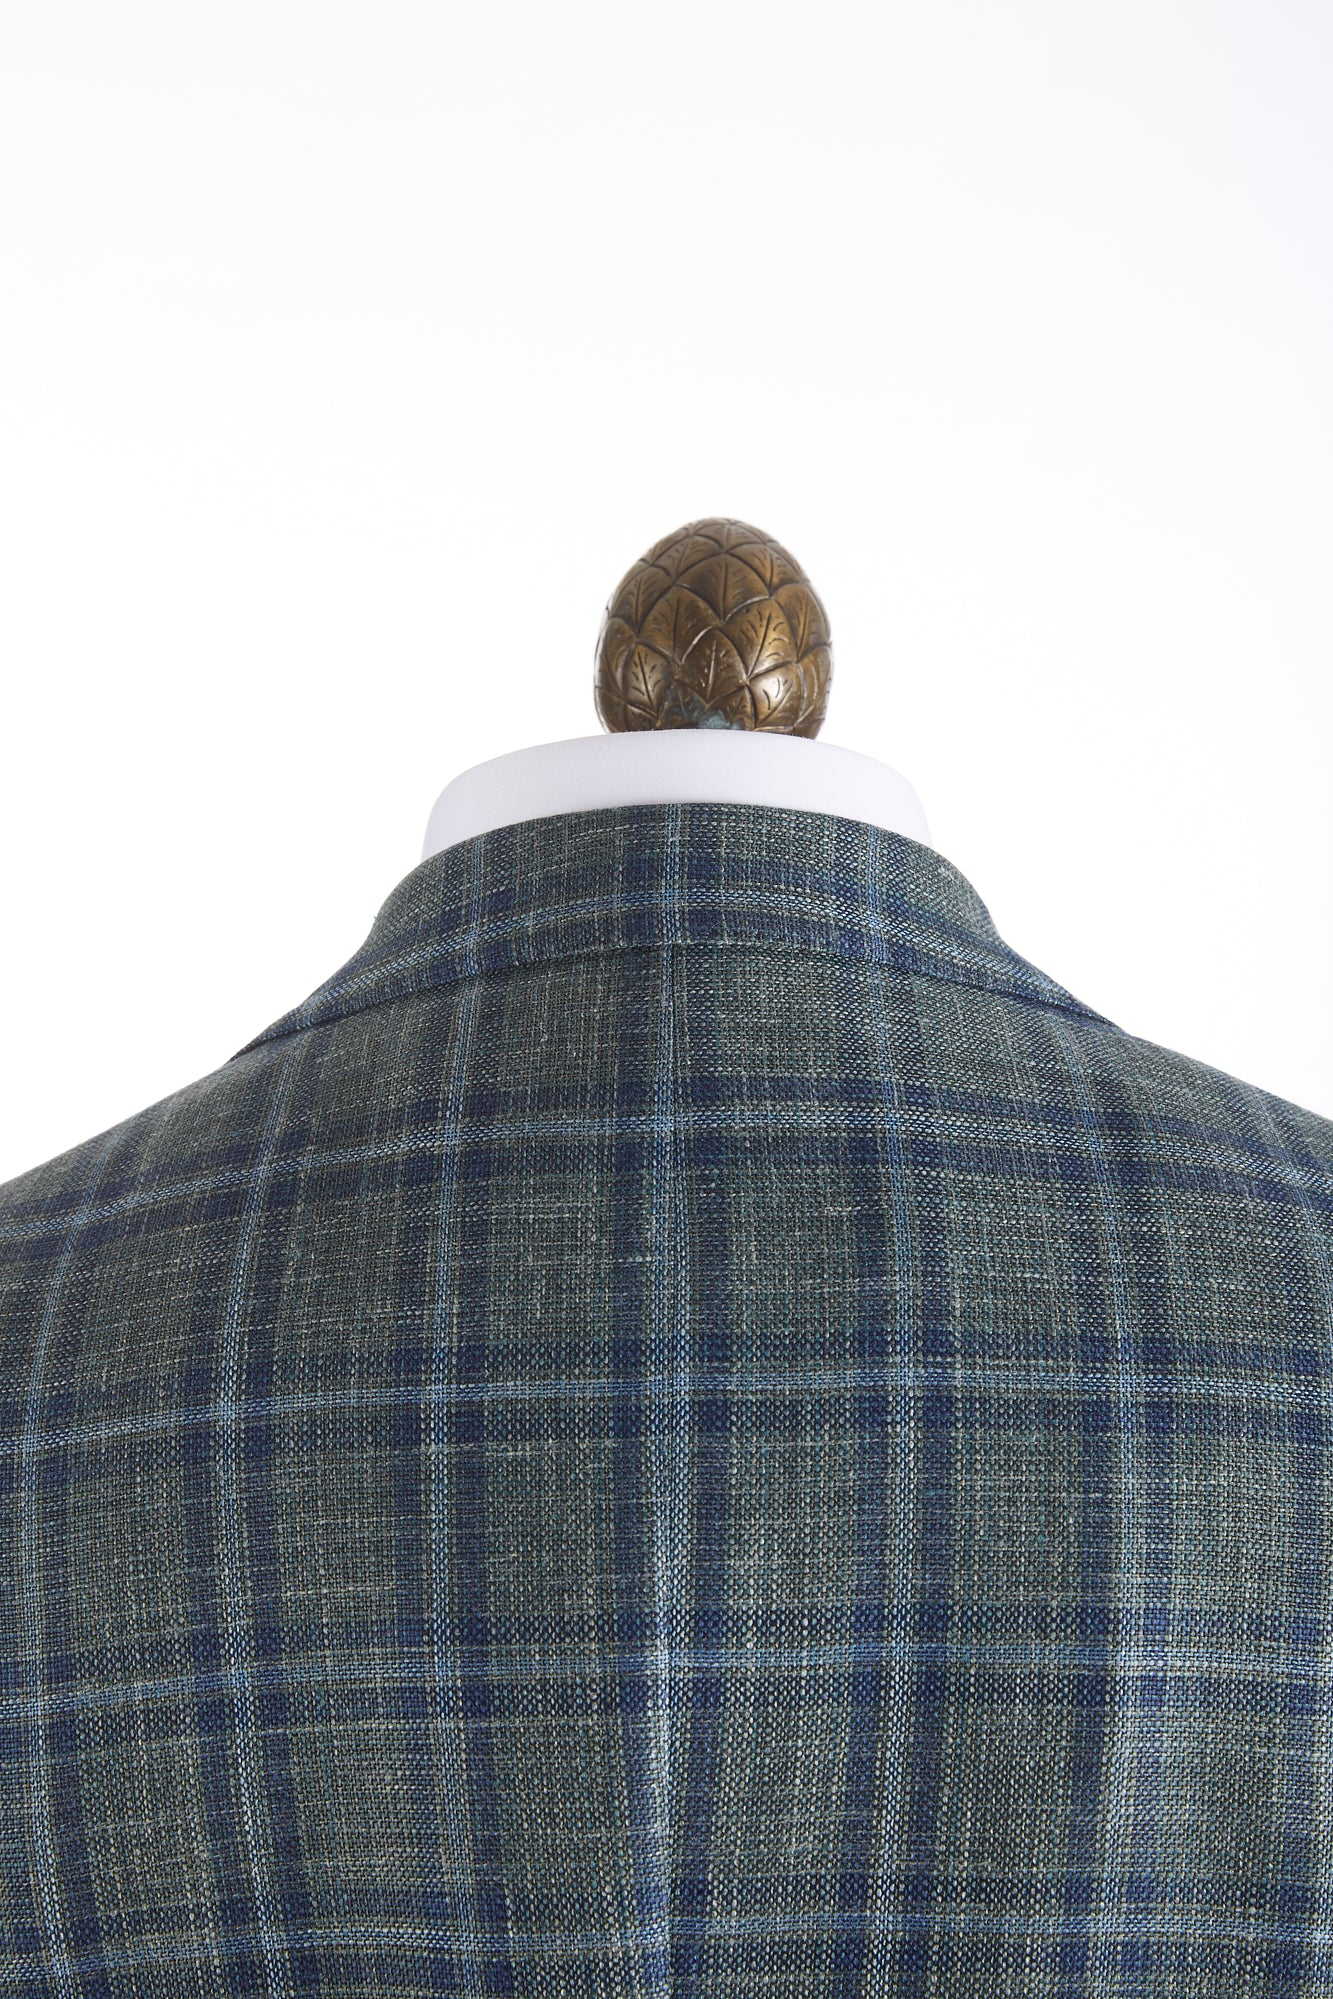 Luigi Bianchi Mantova Green Windowpane Loro Piana Sport Jacket Collar